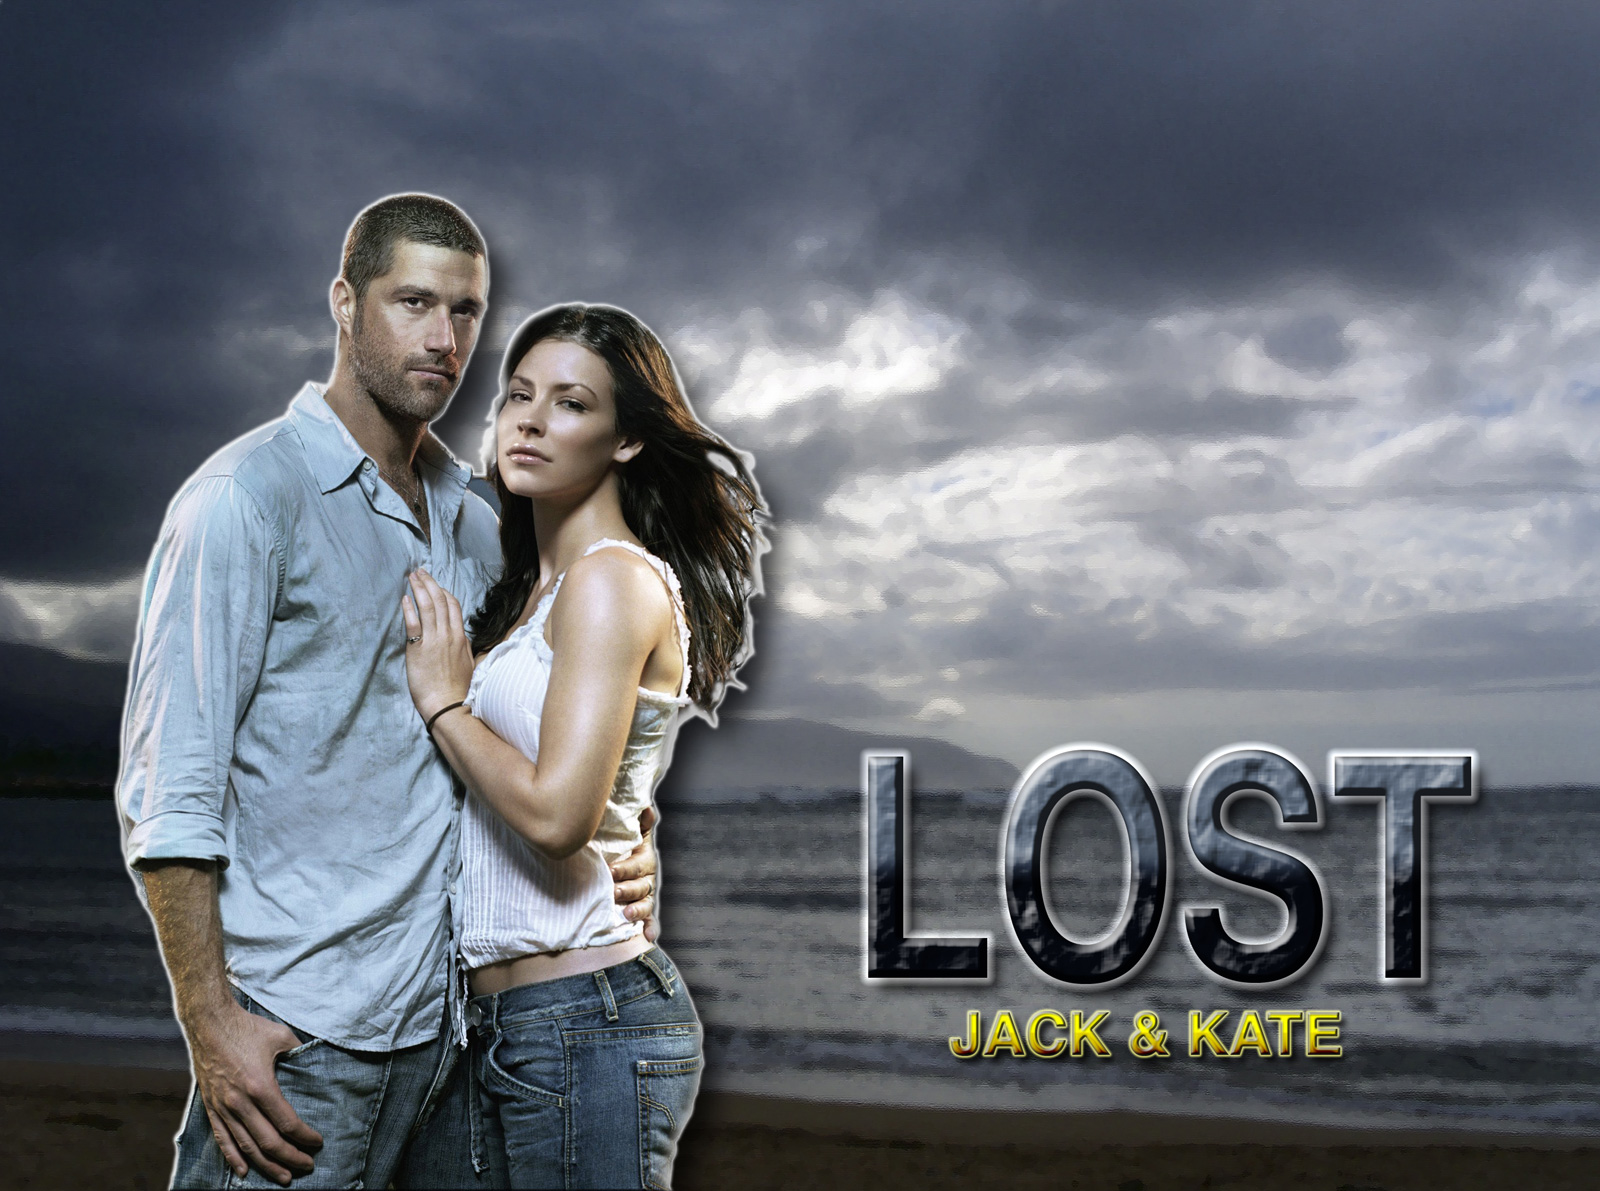 jack and kate lost relationship images